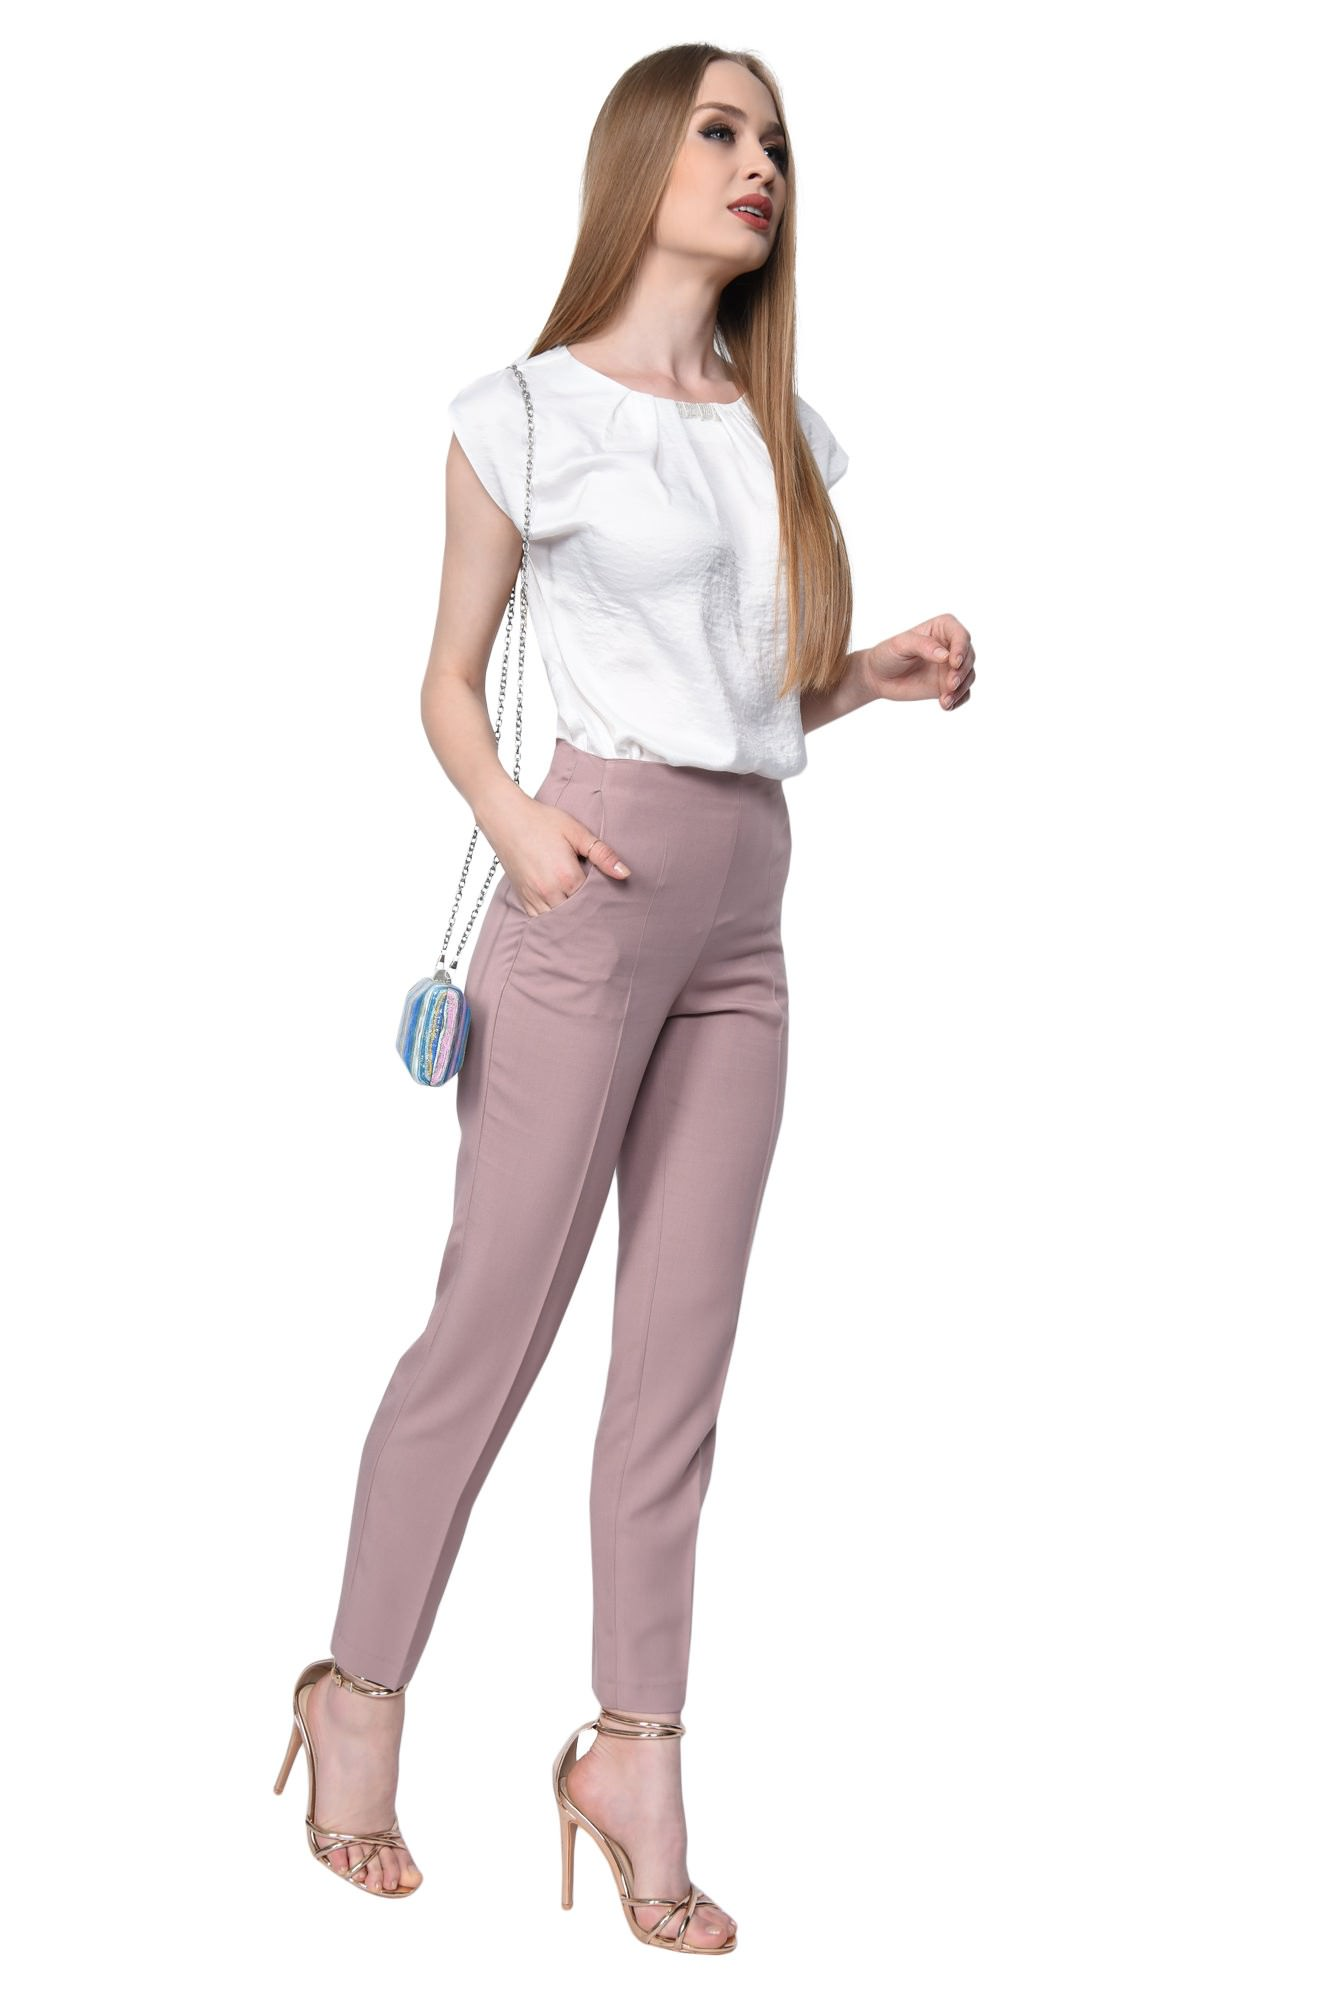 0 - PANTALON CASUAL CONIC PT 152-BEJ